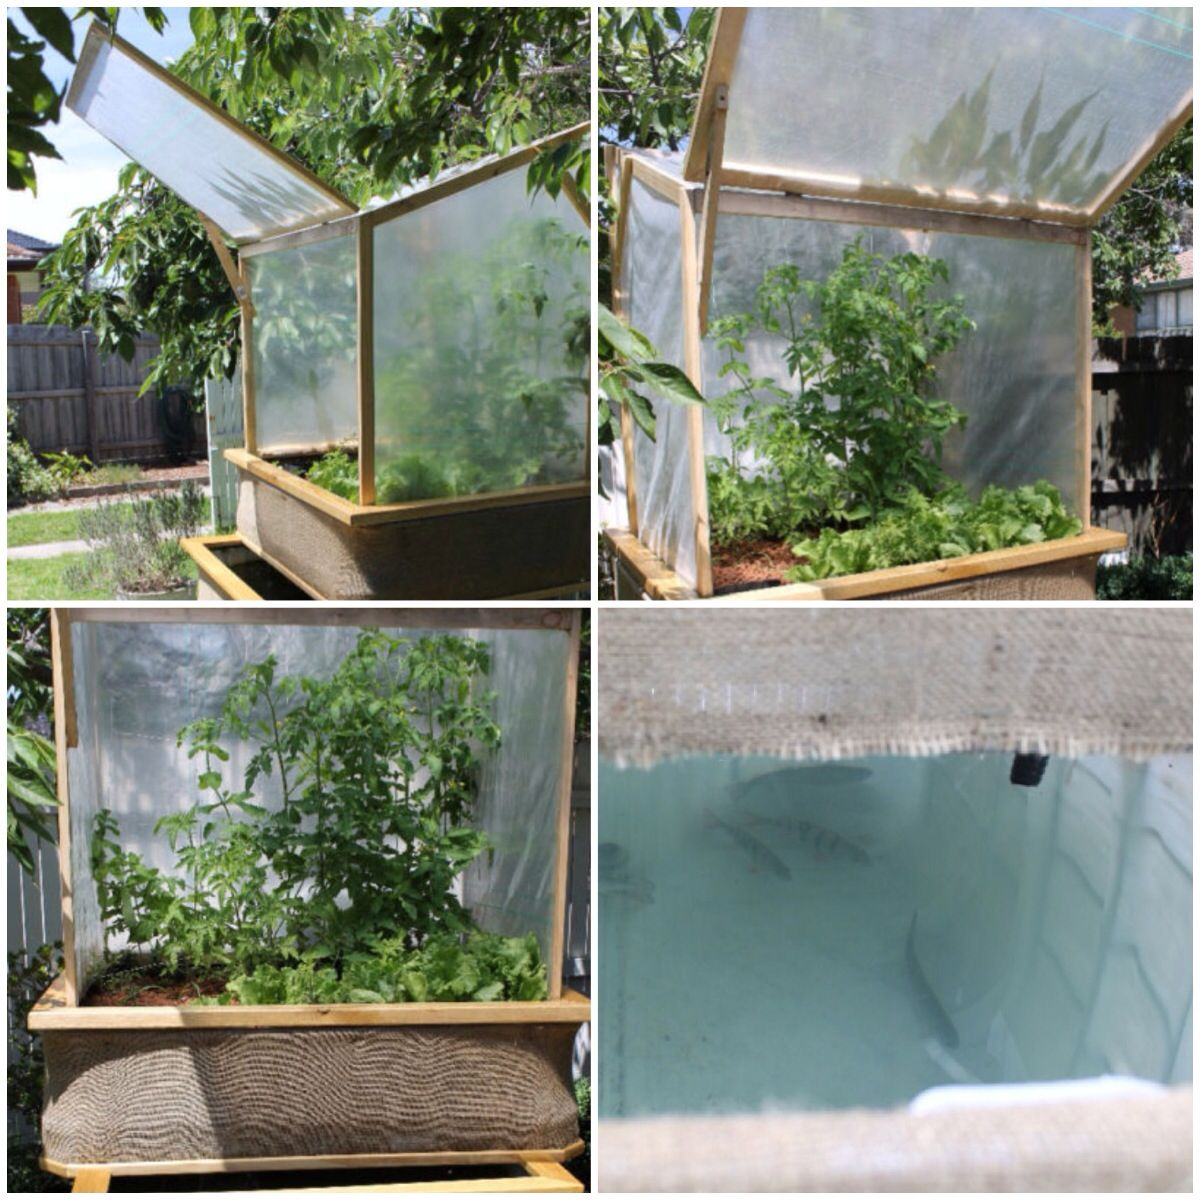 Aquaponics growing food pinterest diy and crafts for Arizona aquaponics